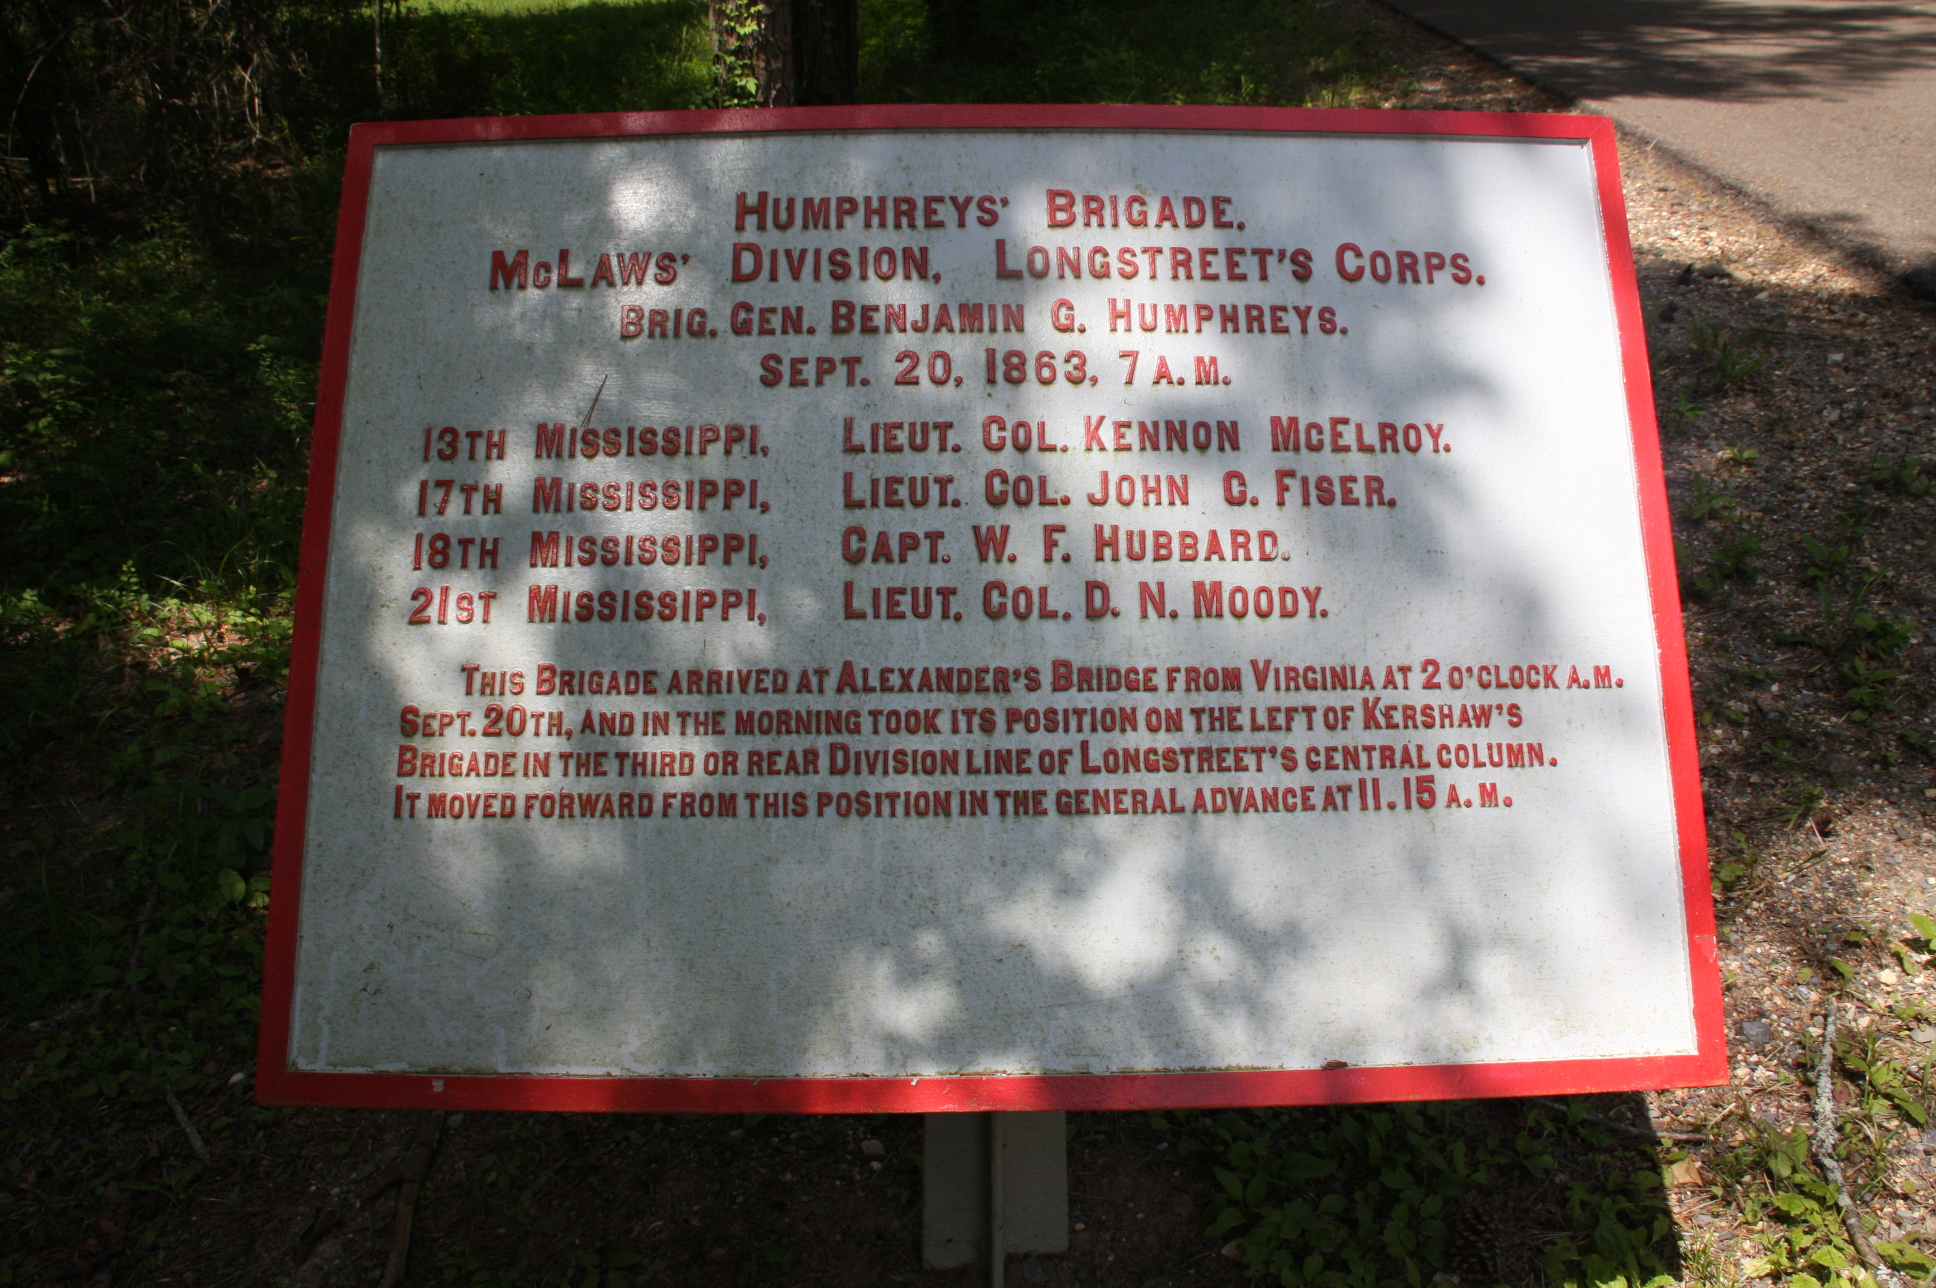 Humphrey's Brigade Tablet, click photo to enlarge.